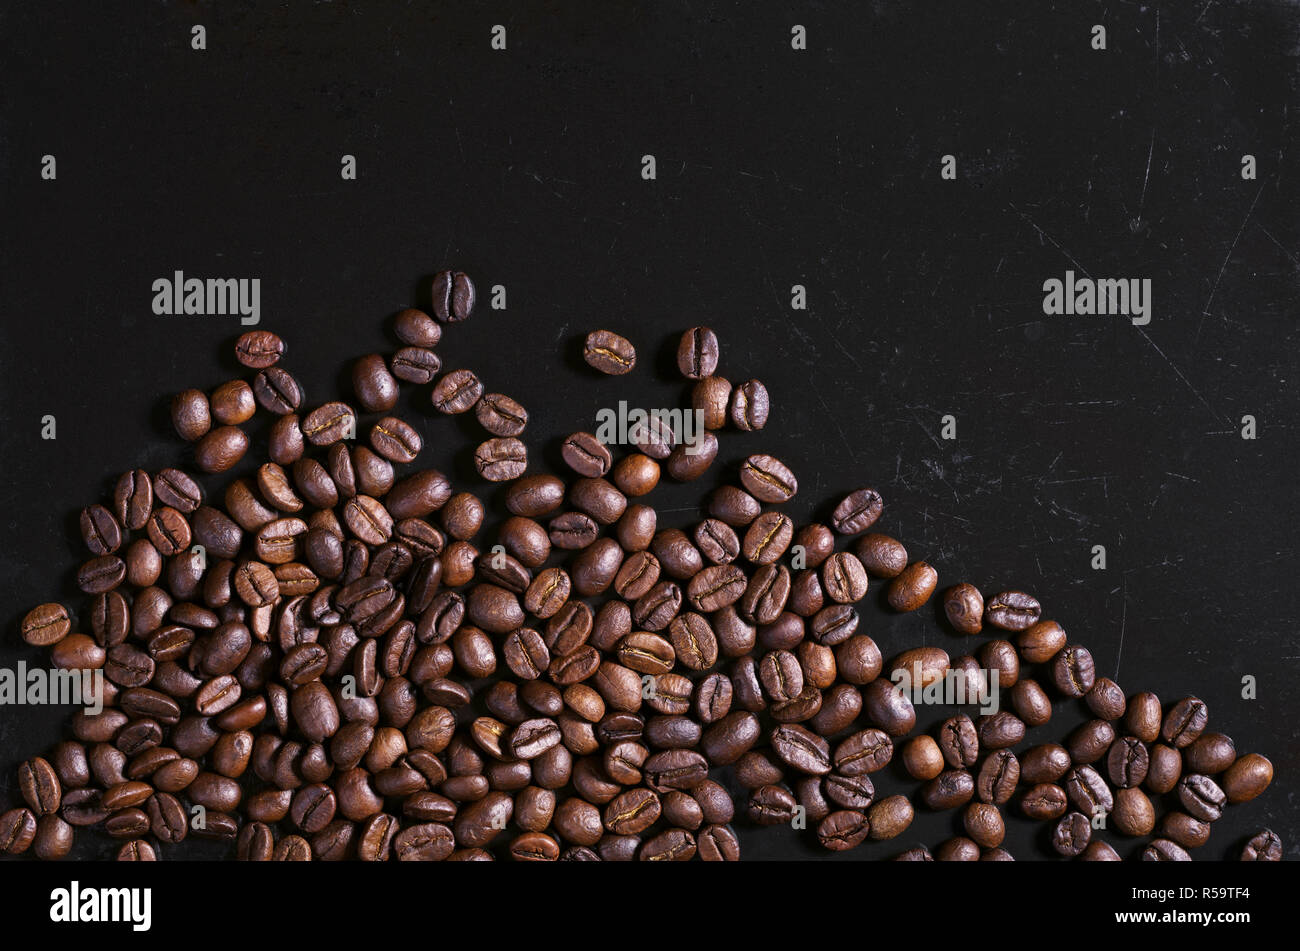 Coffee beans scattered on old black metal background space for your